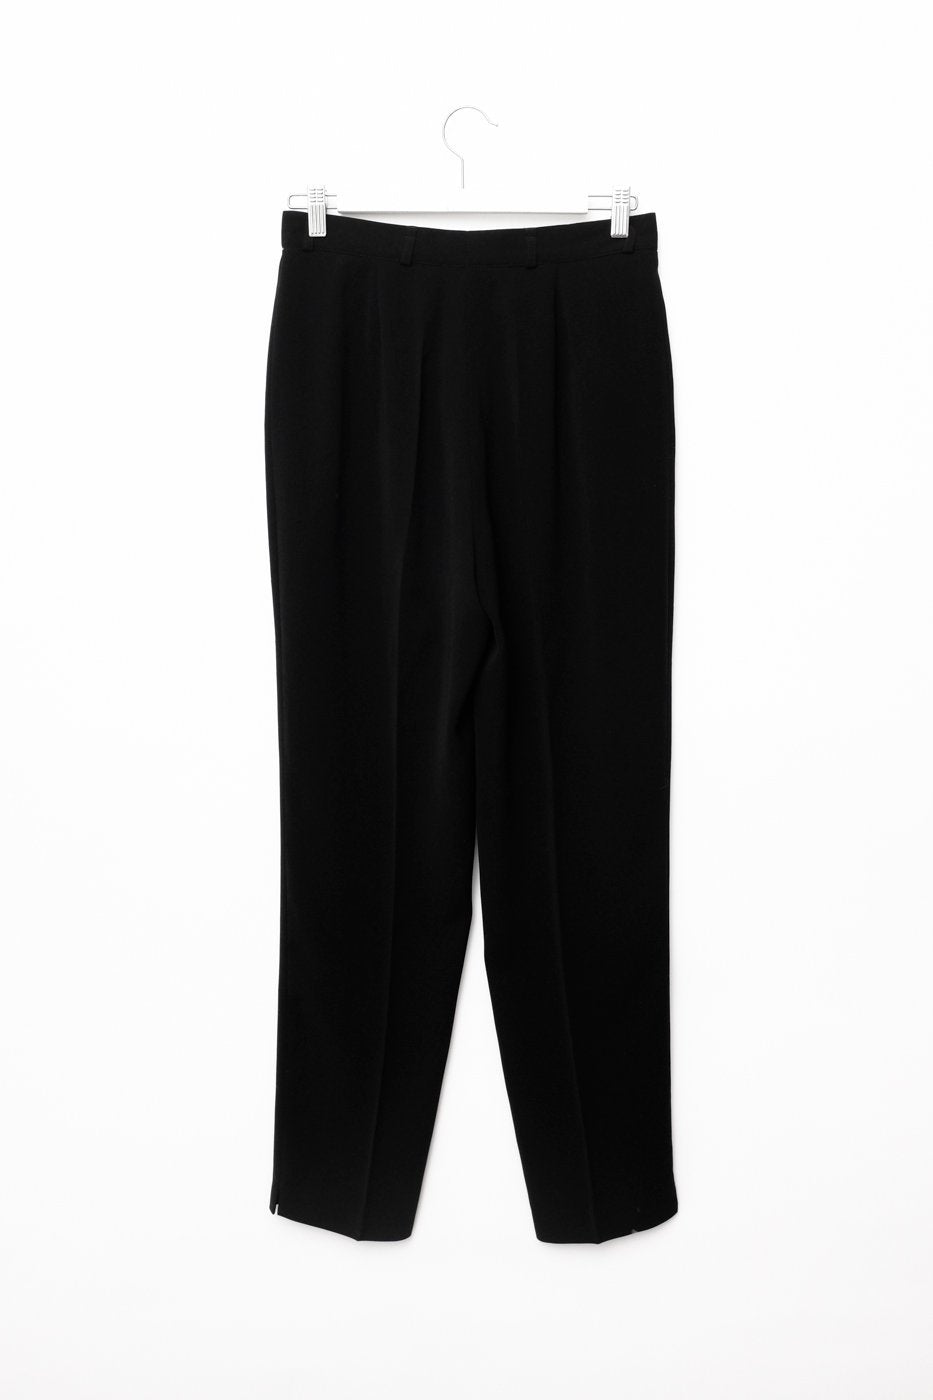 0478_BLACK MINIMAL CARROT PANTS